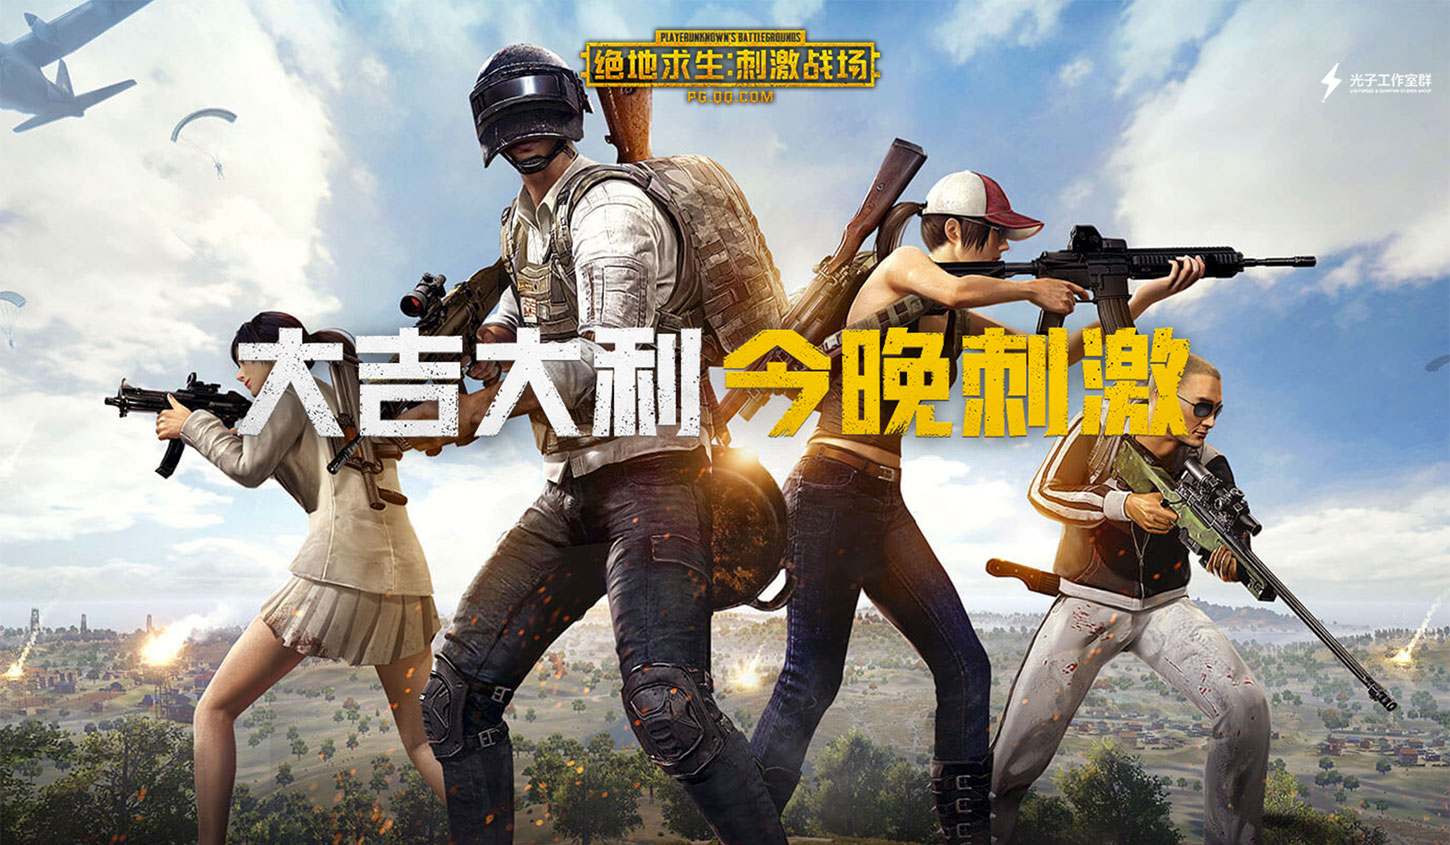 Chinese Survivor Game Post-New Year Trends